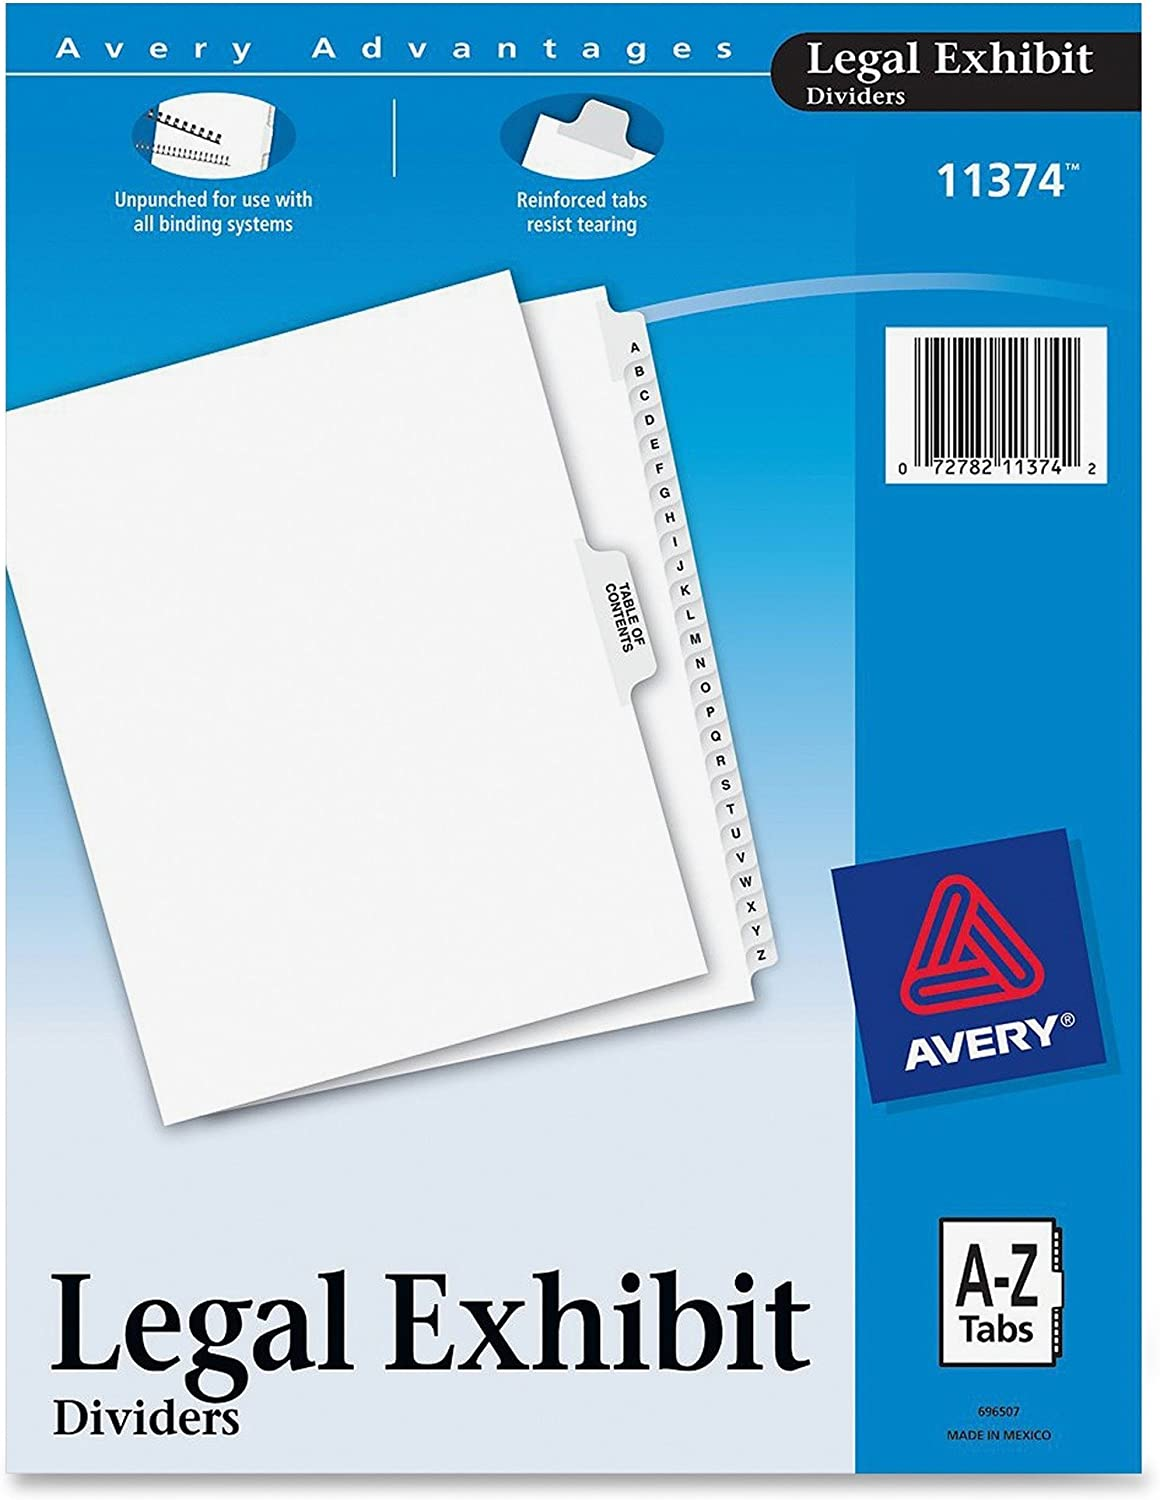 Avery-Style Premium Collated Legal Index Exhibit Dividers, A-Z and Table of Contents, Side-Tab, 8.5 x 11-Inches, 1 Set (11374), White : Binder Index Dividers : Office Products